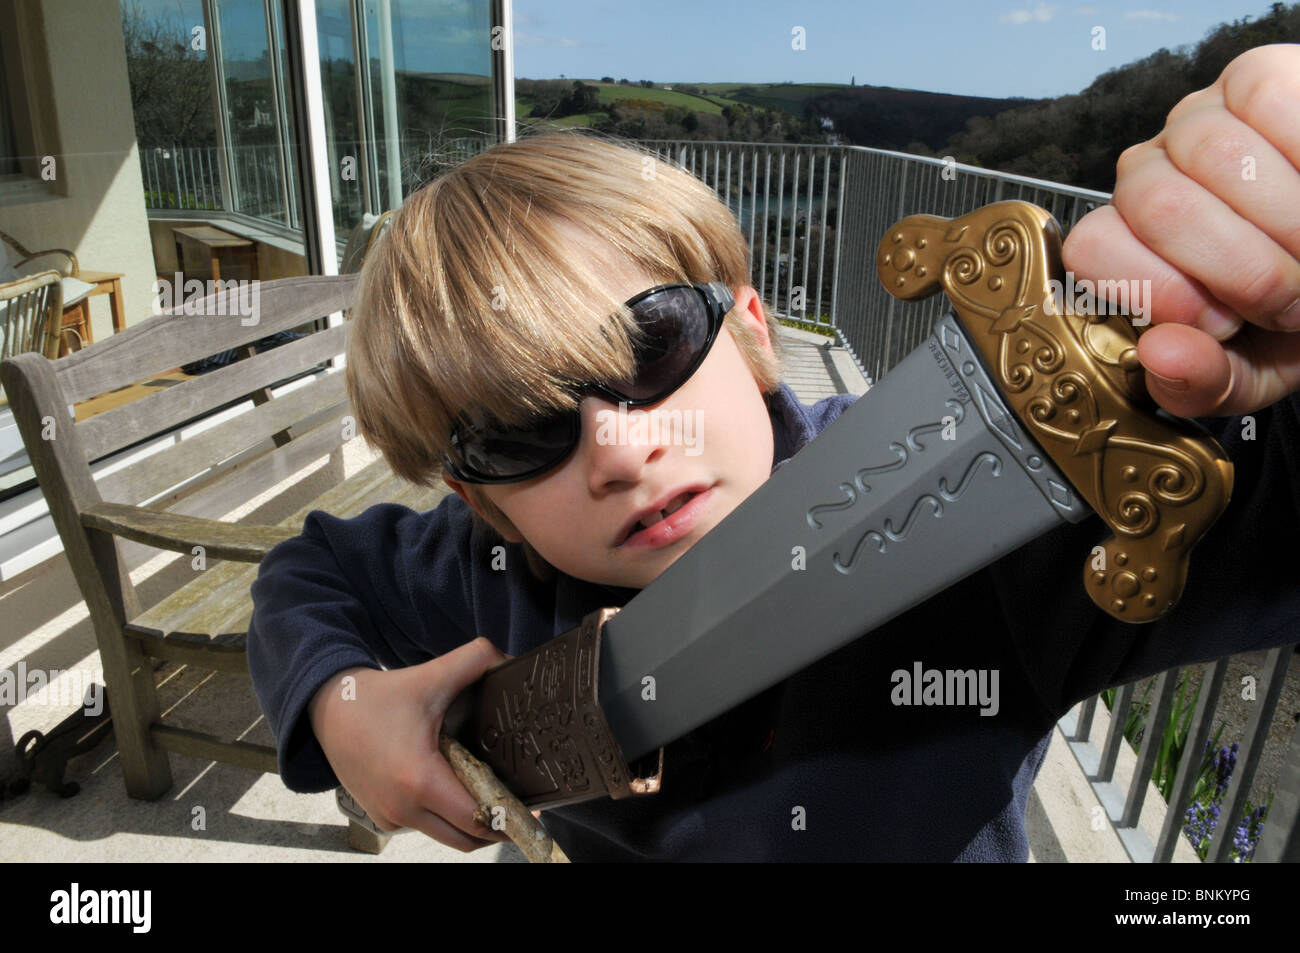 Fair-haired boy wearing sunglasses and playing with a plastic sword and scabbard outside by a bench. - Stock Image